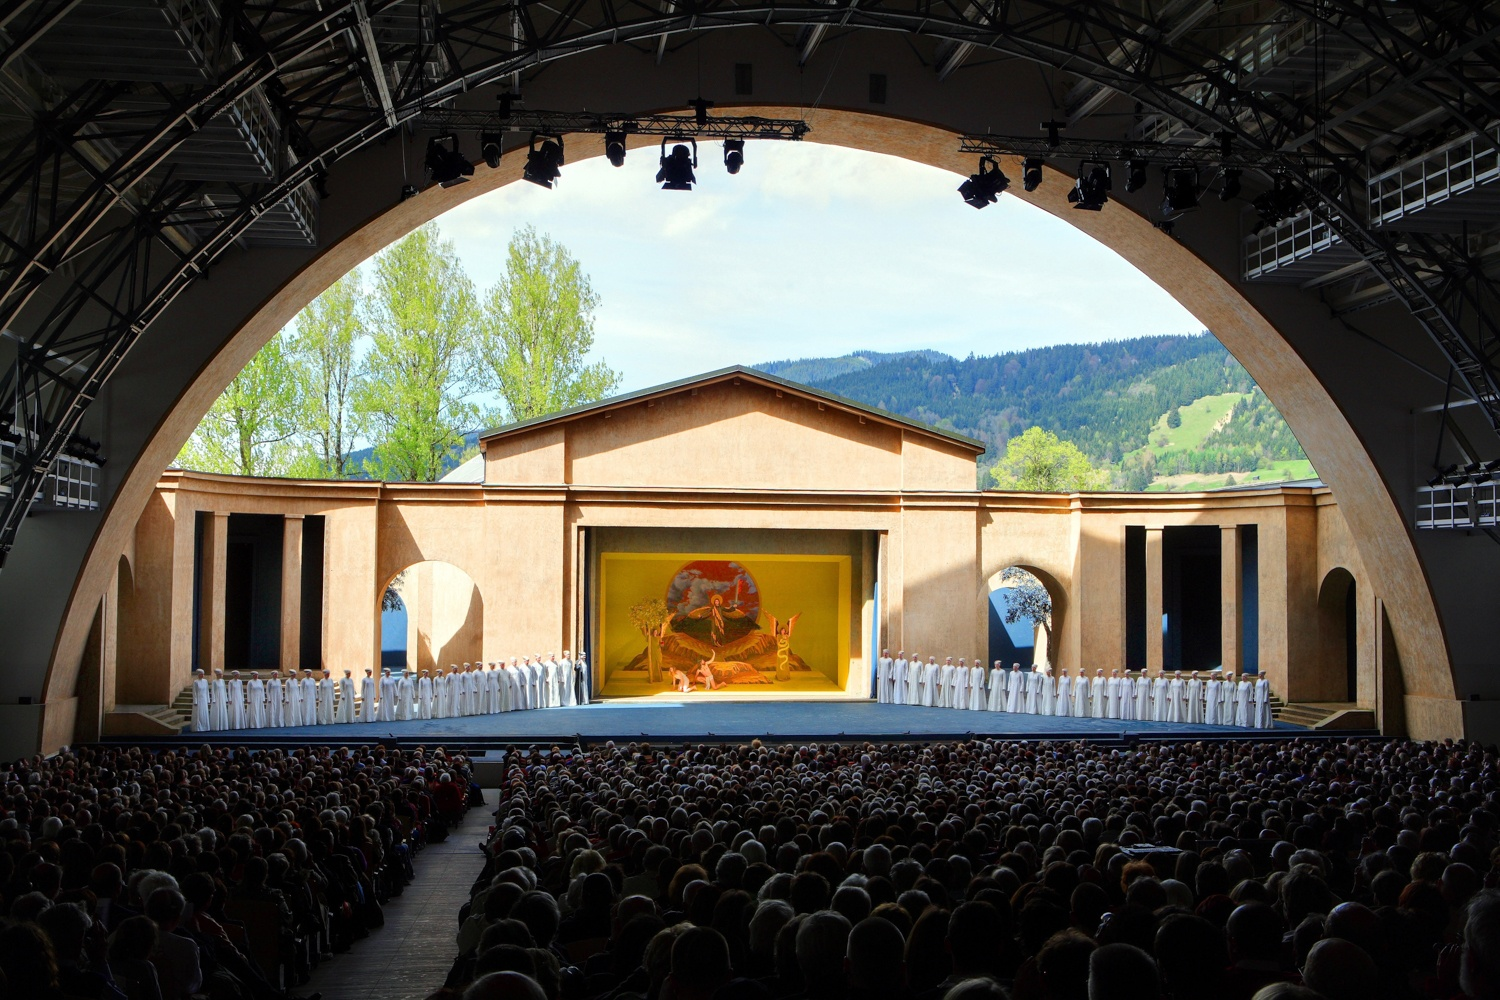 Passion Play theatre daytime Photos: Oberammergau Passion Play 2020